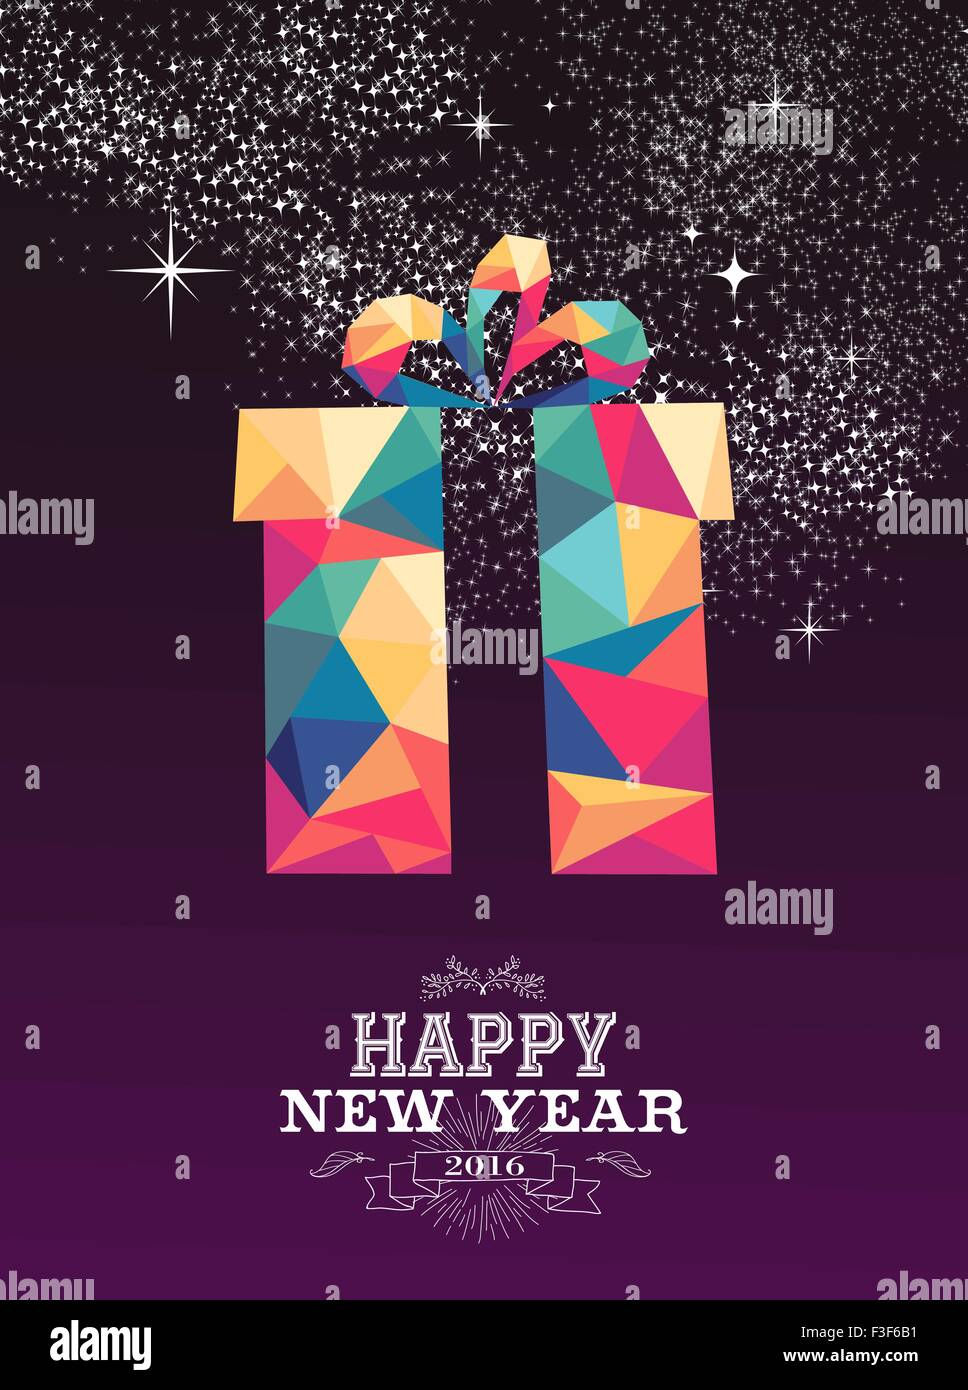 Design poster new - Poster Design 2016 Happy New Year 2016 Greeting Card Or Poster Design Triangle Style Gift